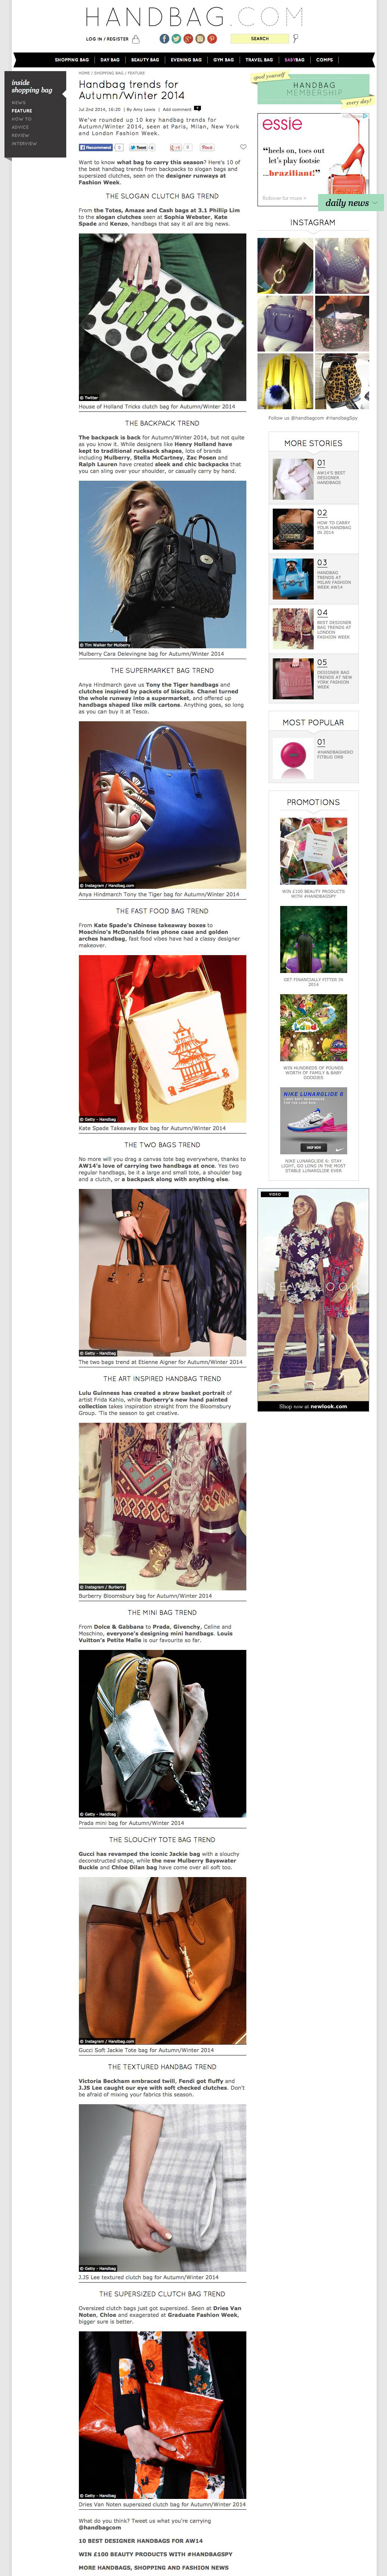 Handbag_trends_for_Autumn_Winter_2014_-_Shopping_Bag_Feature_-_handbag.com_-_2014-07-31_14.44.47.png